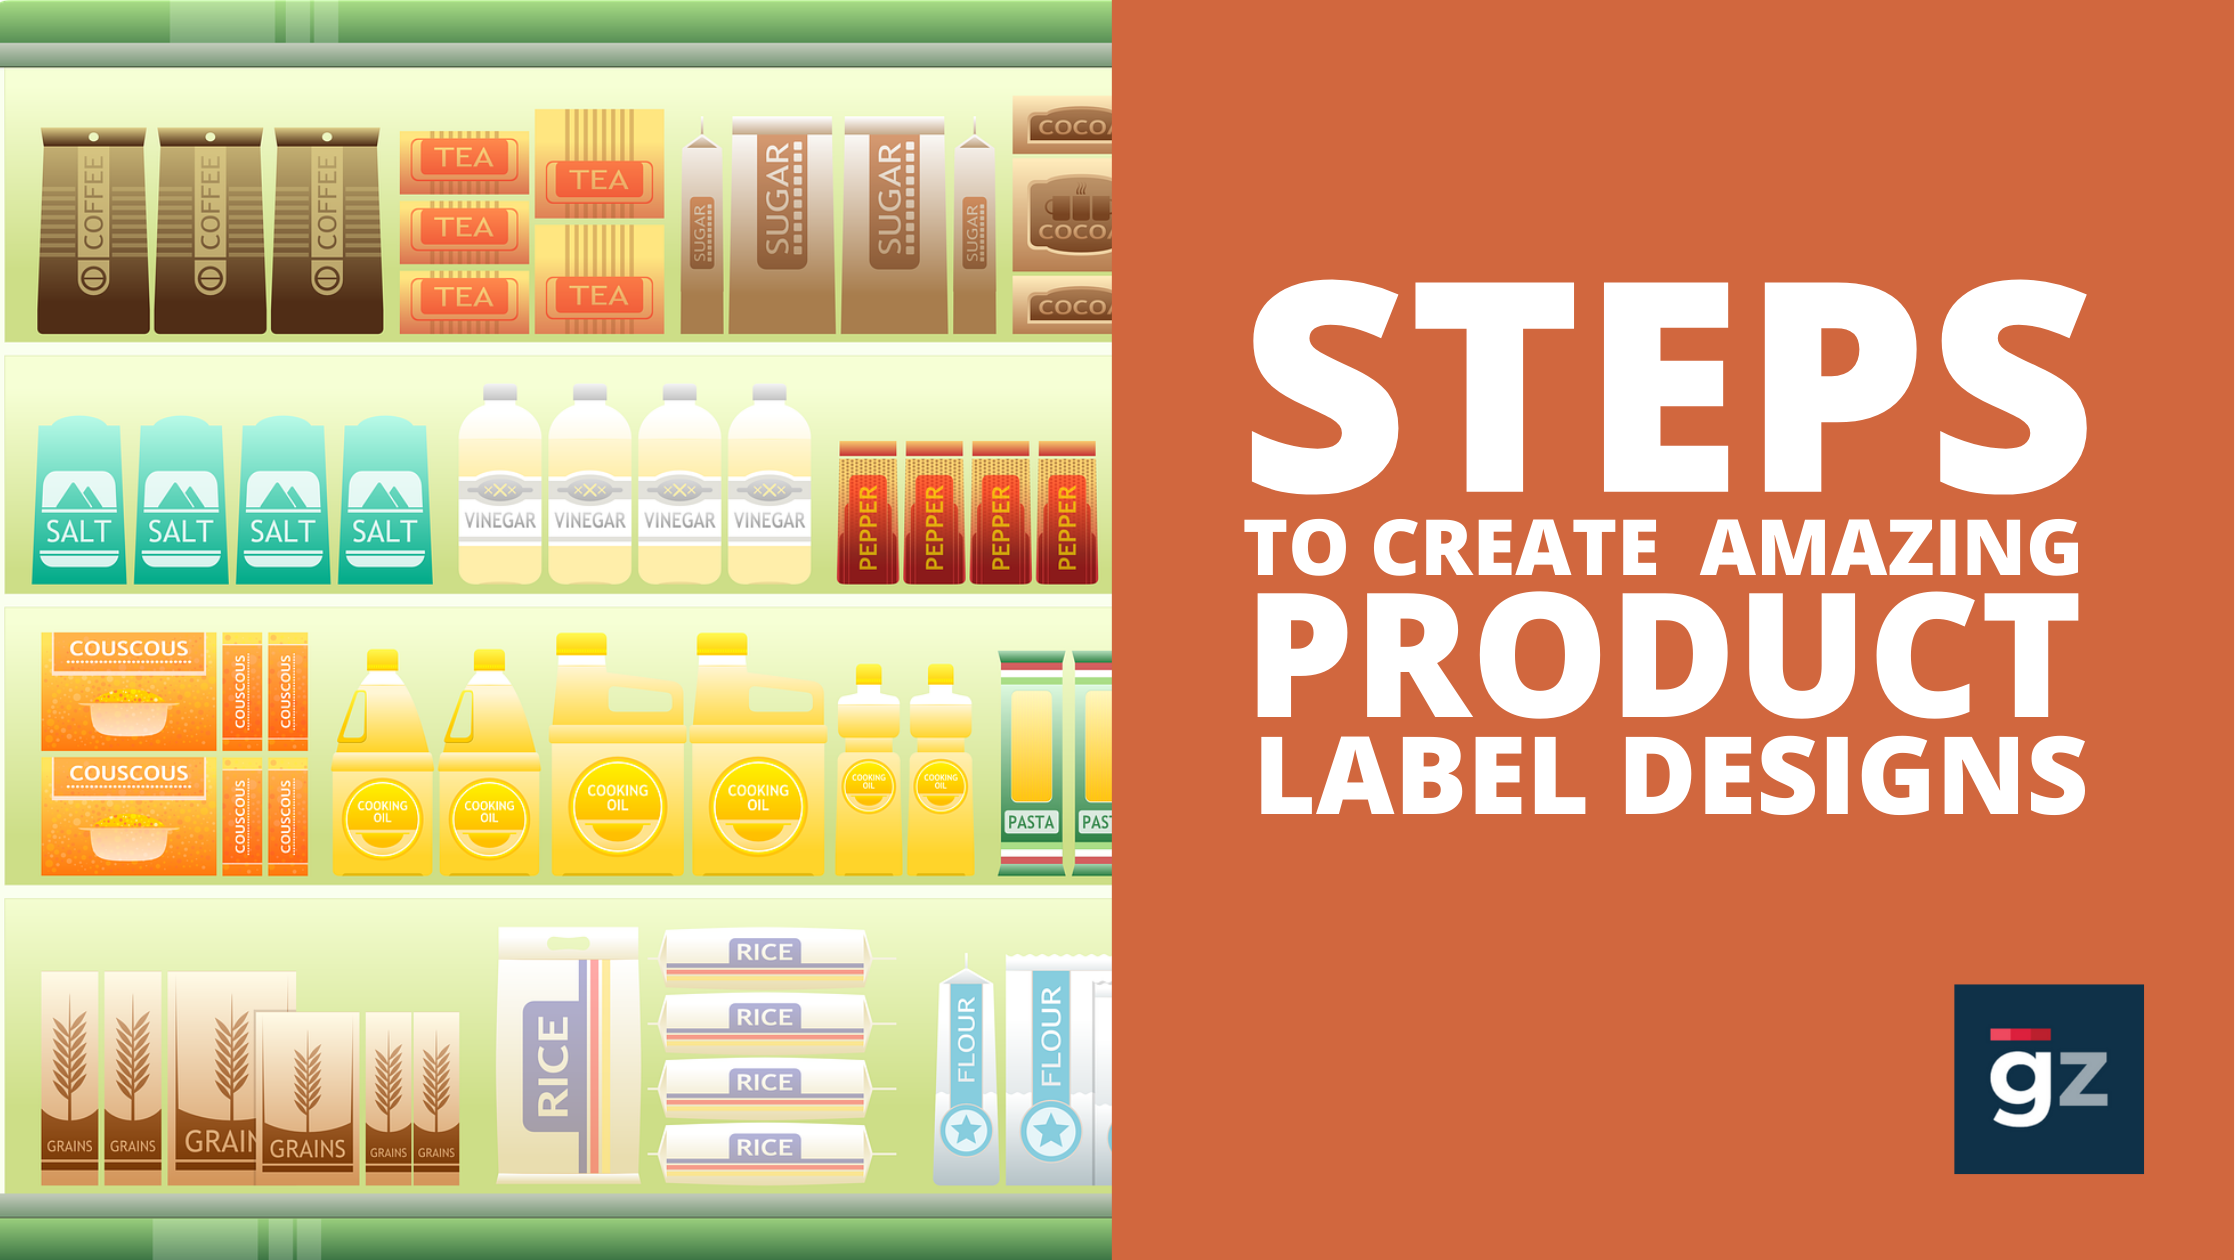 5 Simple Steps to Create Amazing Product Label Designs